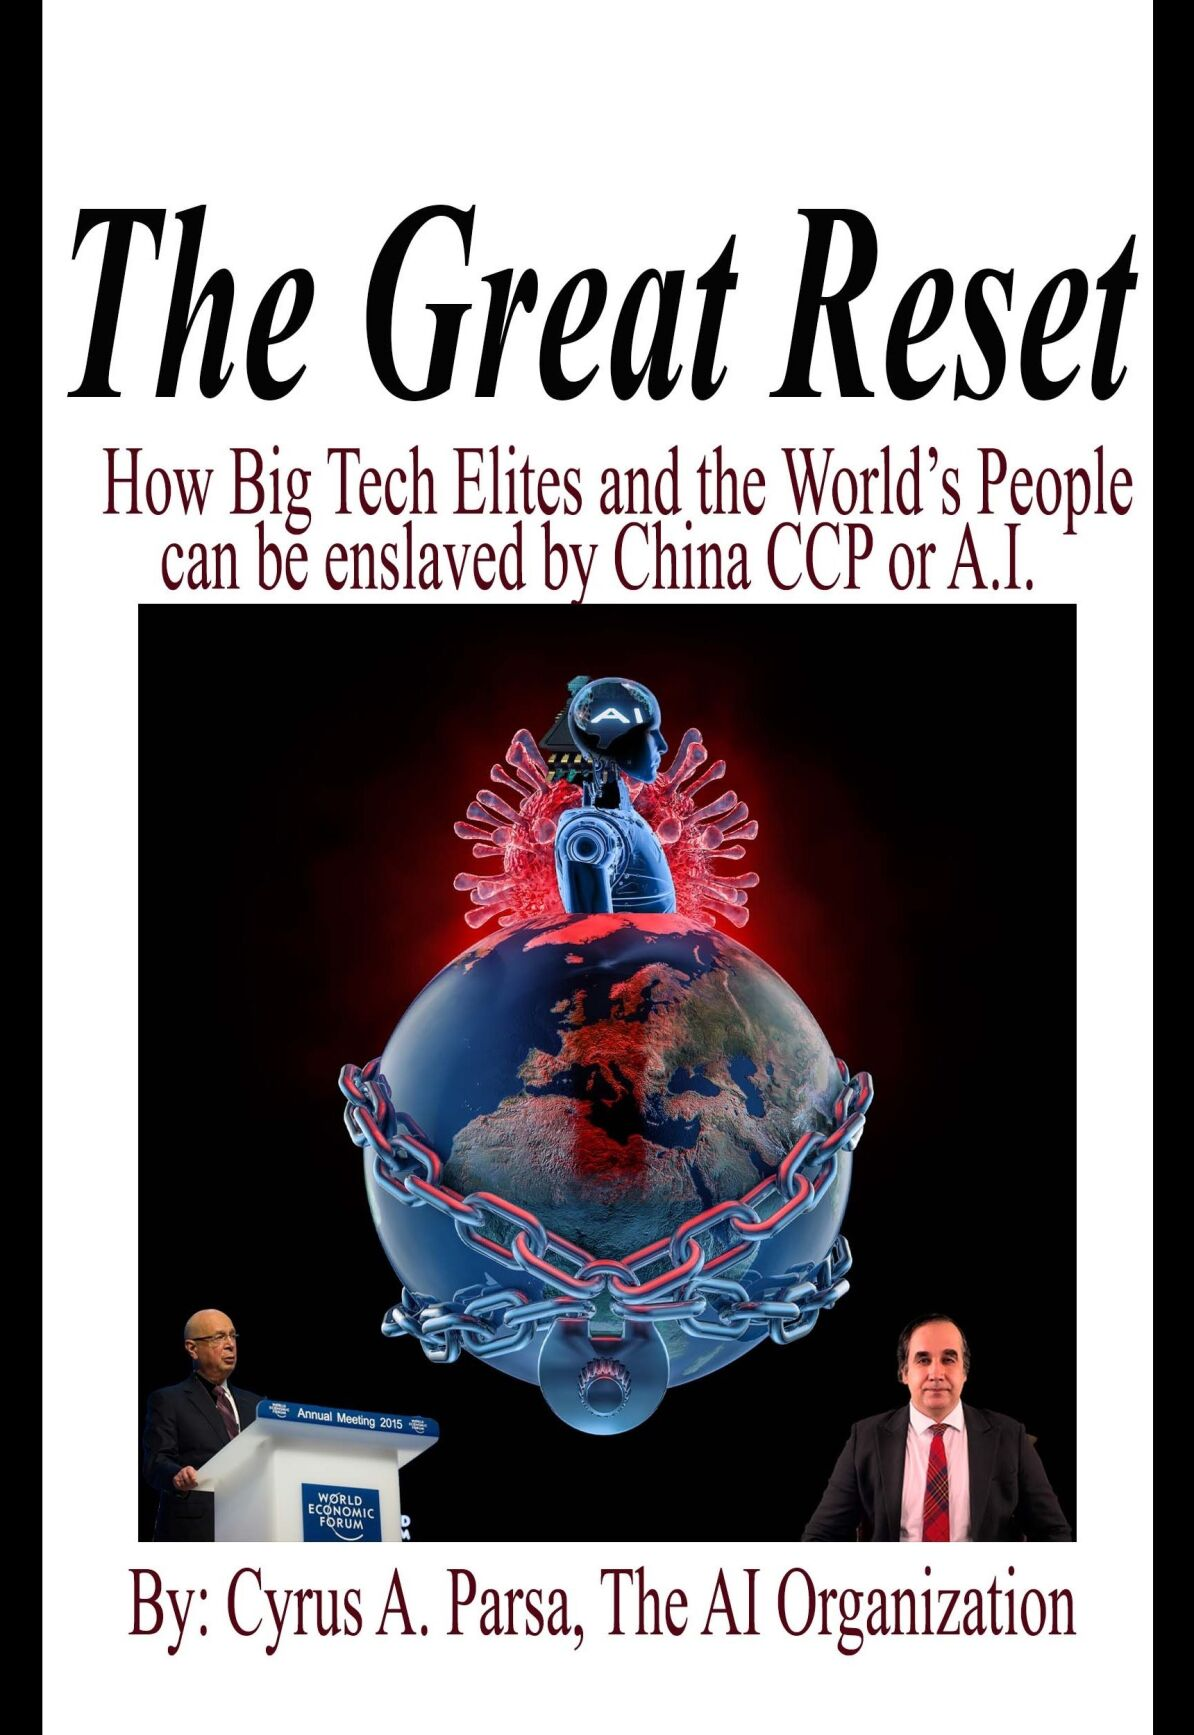 The Great Reset: New Book by Cyrus A. Parsa of The AI Organization